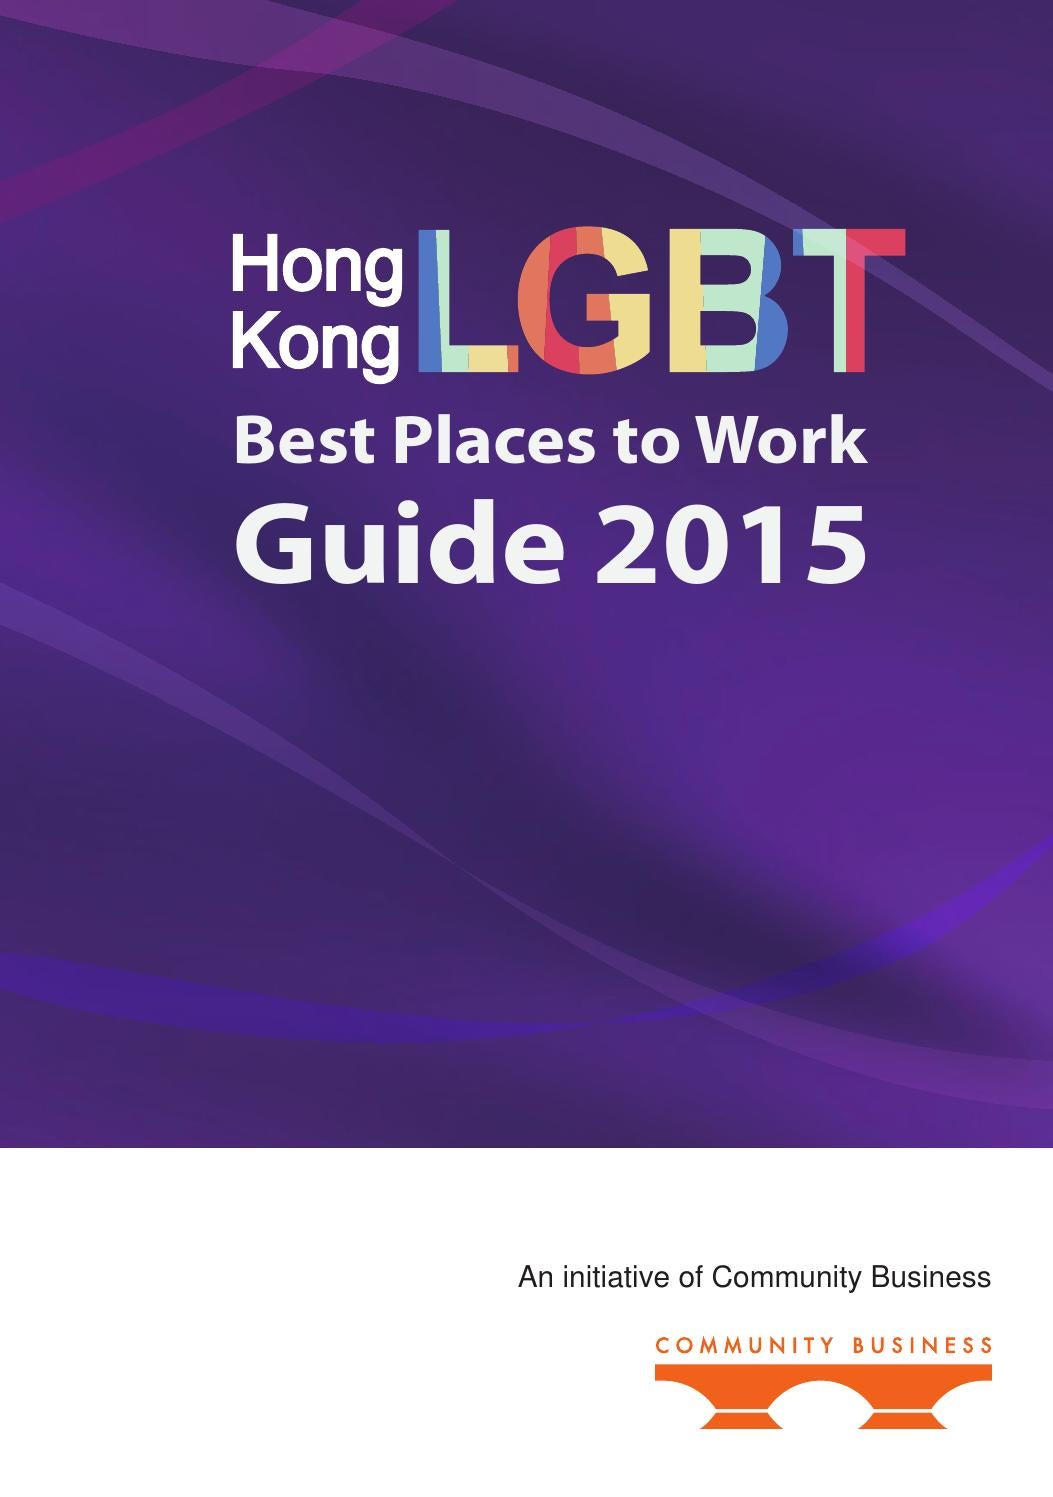 hong kong lgbt best places to work guide 2015 by community business rh issuu com